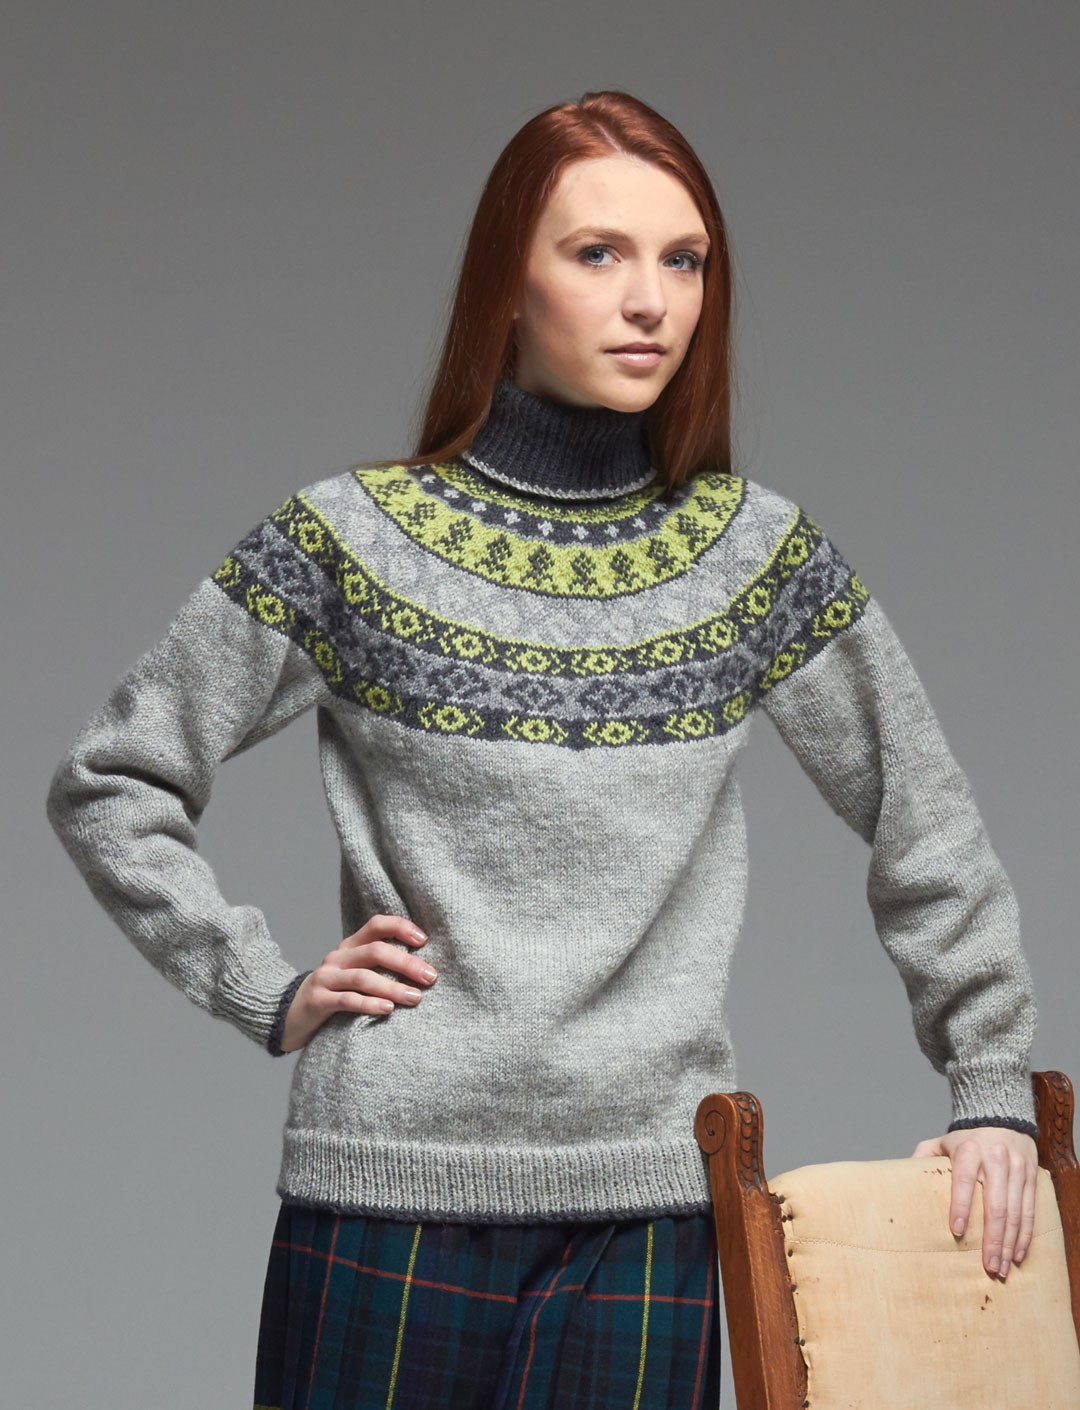 Patons Woman's Fair Isle Yoke Sweater, Knit Pattern | Yarnspirations